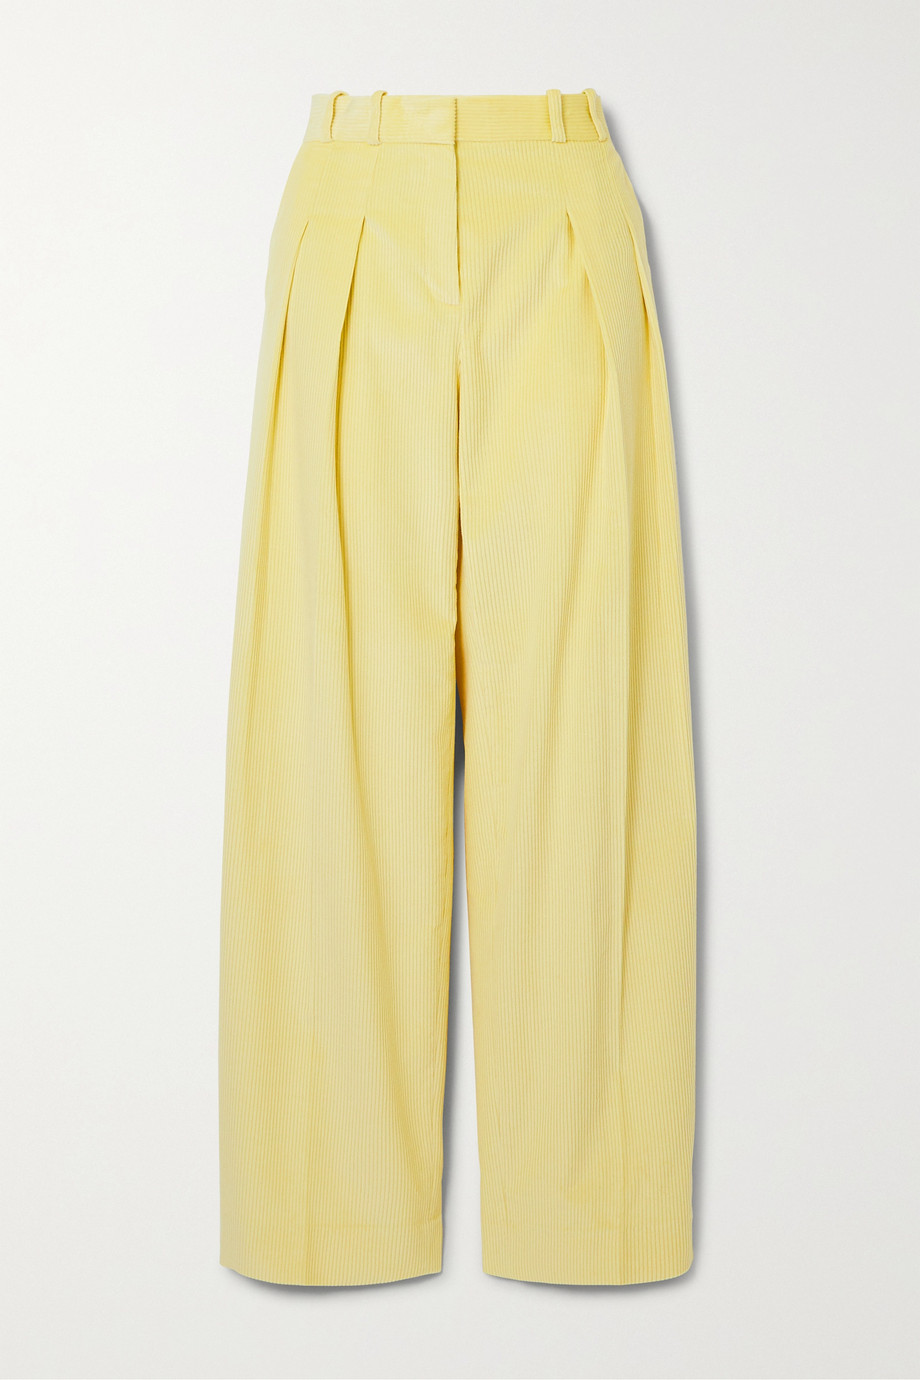 Victoria, Victoria Beckham Pleated cotton-corduroy wide-leg pants